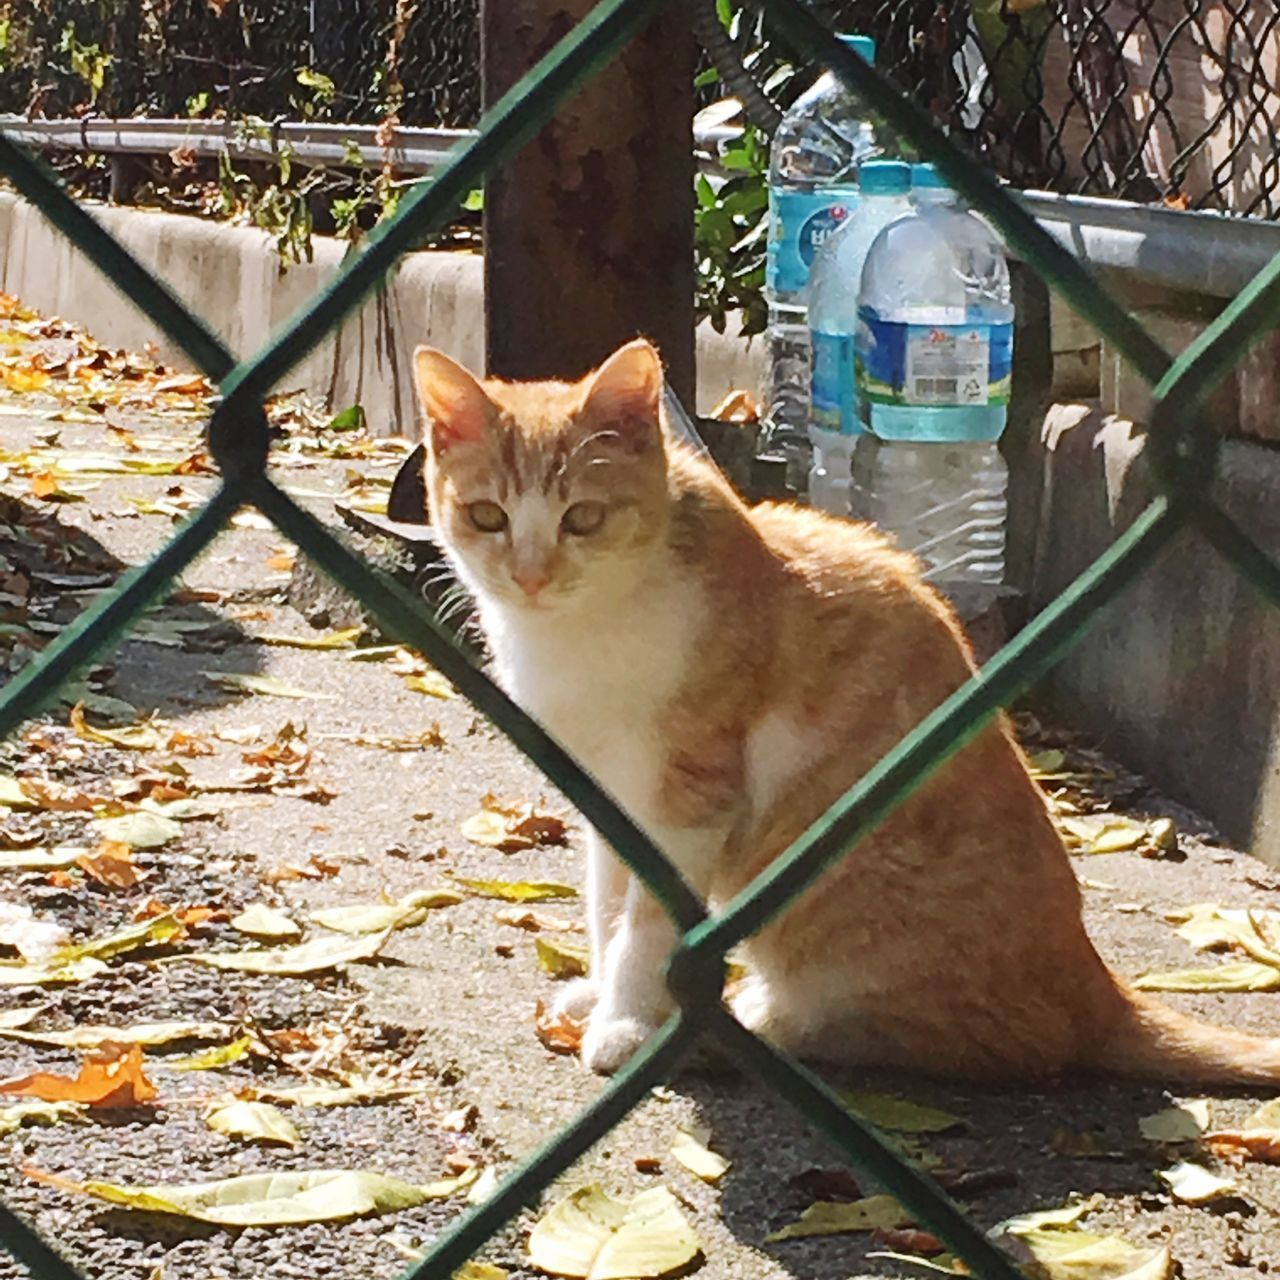 domestic, pets, domestic animals, cat, mammal, domestic cat, feline, vertebrate, one animal, sitting, portrait, looking at camera, nature, no people, day, fence, barrier, ginger cat, whisker